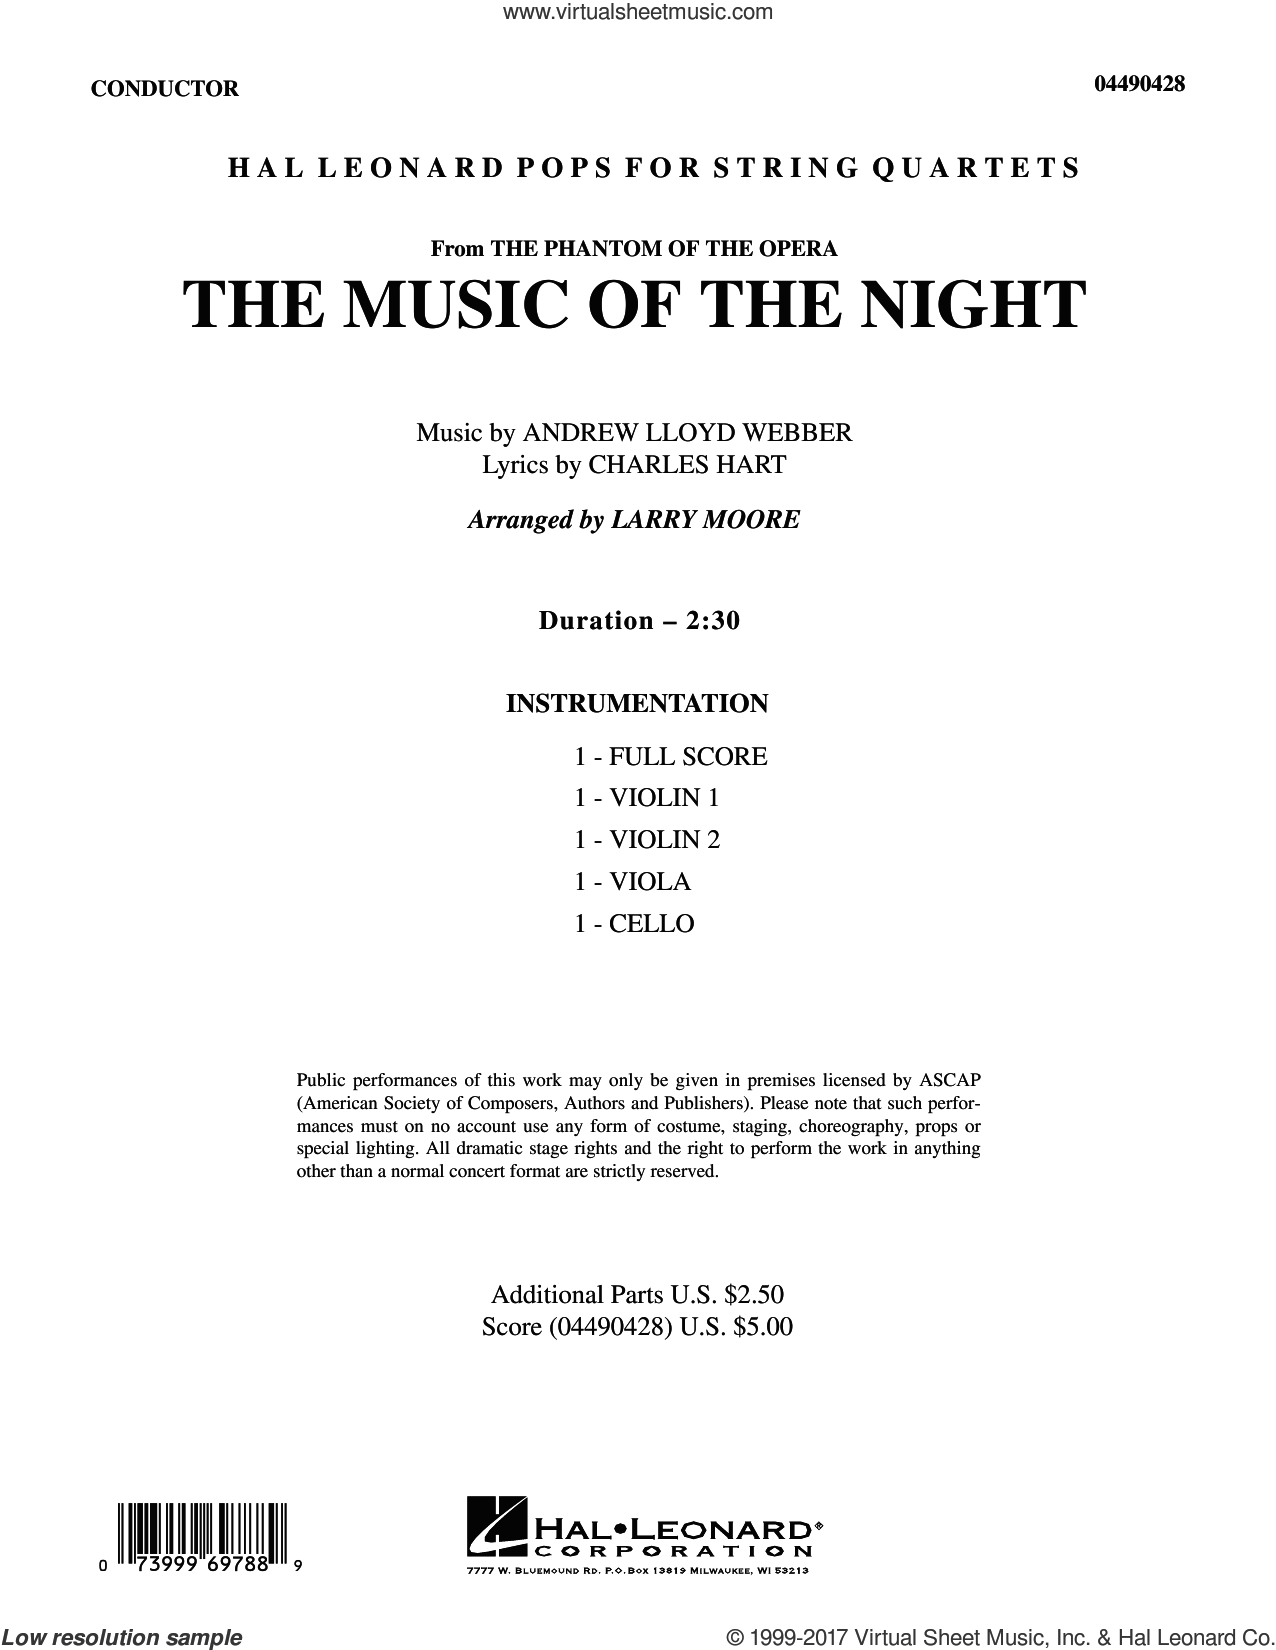 The Music of the Night (from The Phantom of the Opera) (COMPLETE) sheet music for string quartet (Strings) by Andrew Lloyd Webber, Charles Hart, David Cook, Larry Moore and Richard Stilgoe, intermediate orchestra